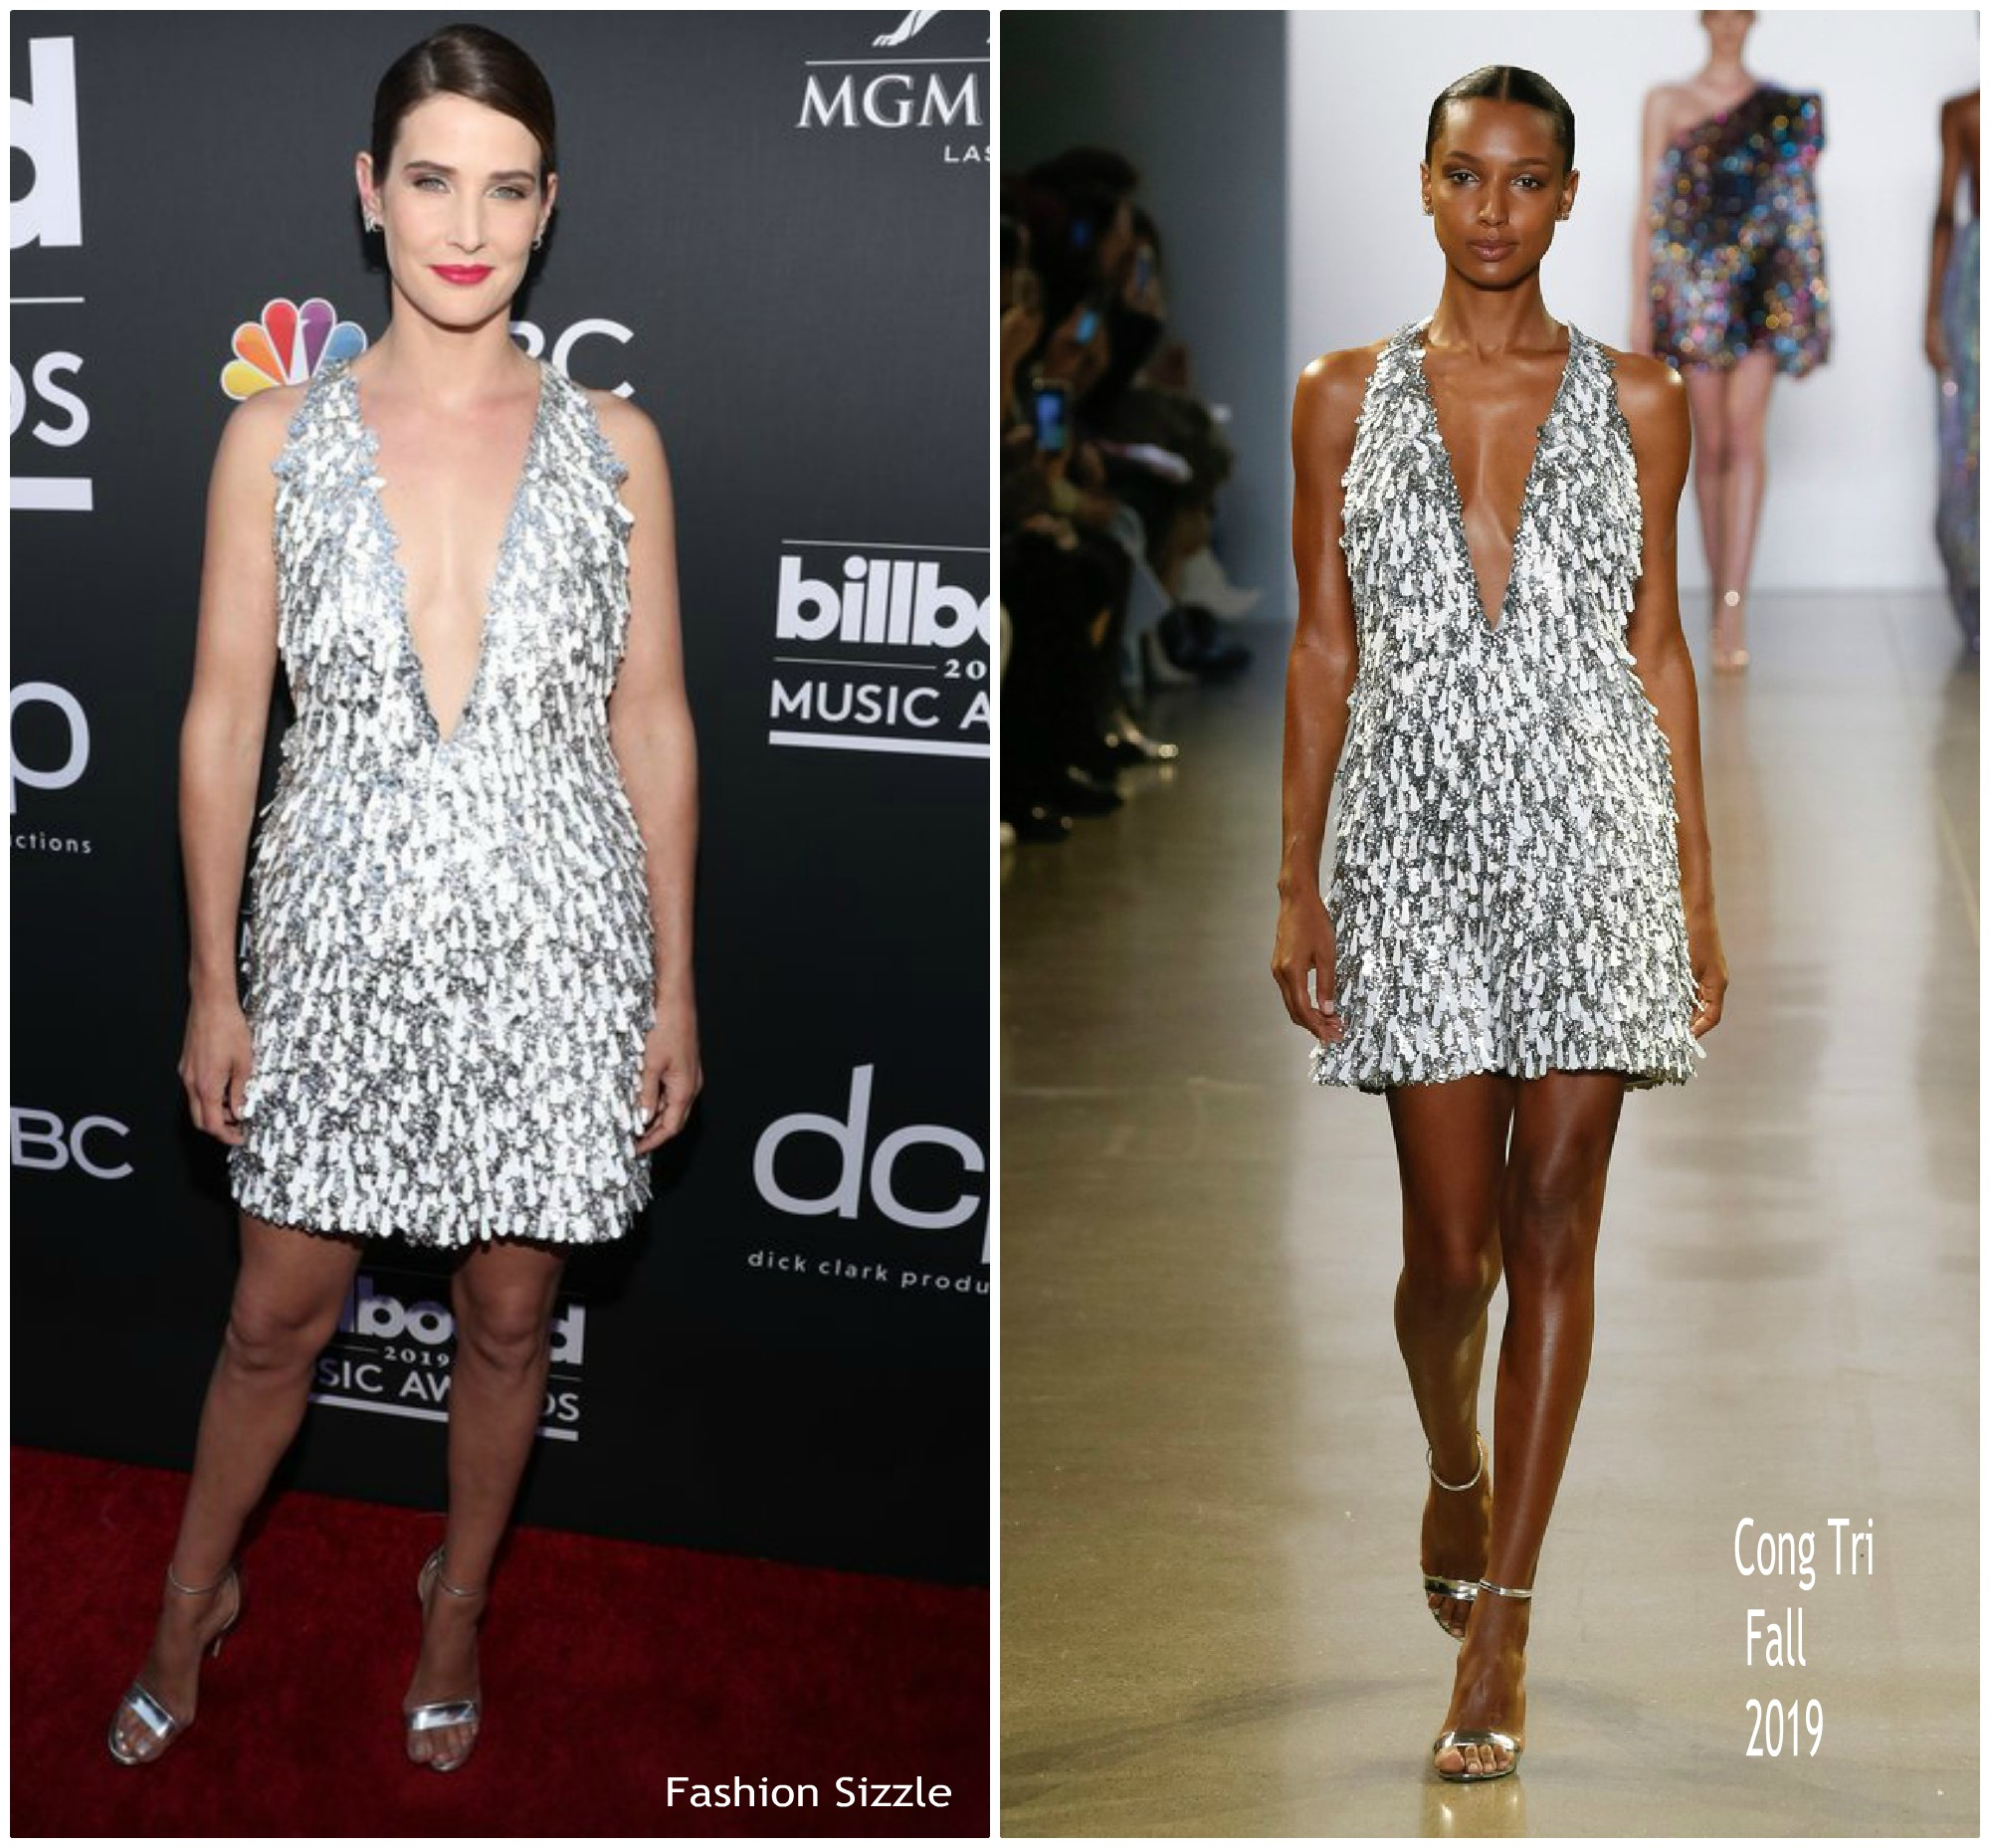 cobie-smulders-in-cong-tri-2019-billboard-music-awards